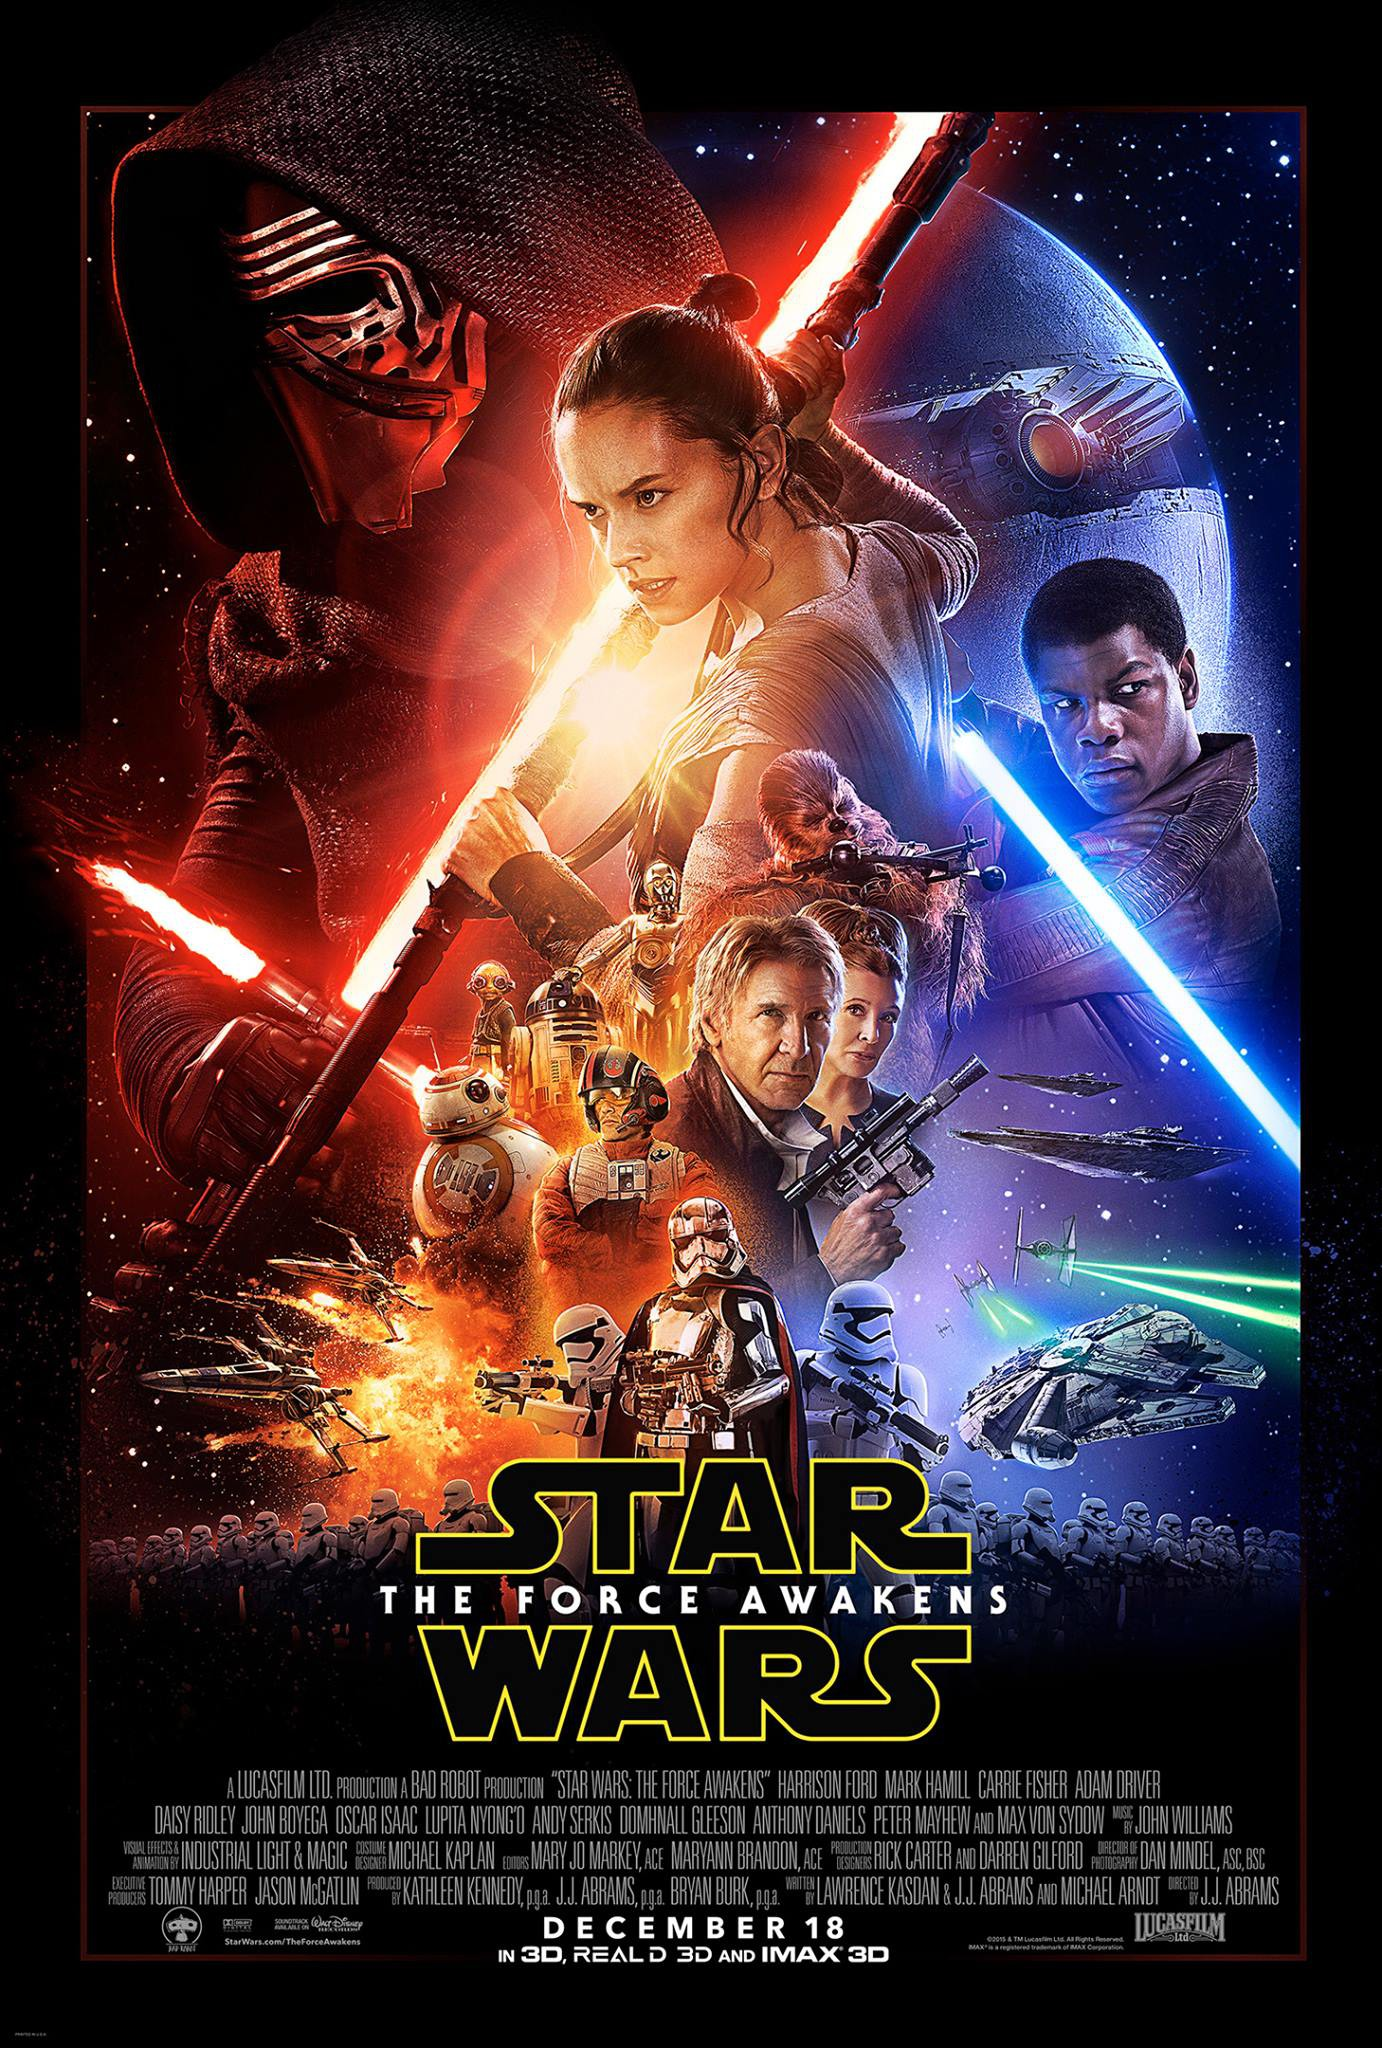 star_wars_episode_vii__the_force_awakens_movie poster, used with permission